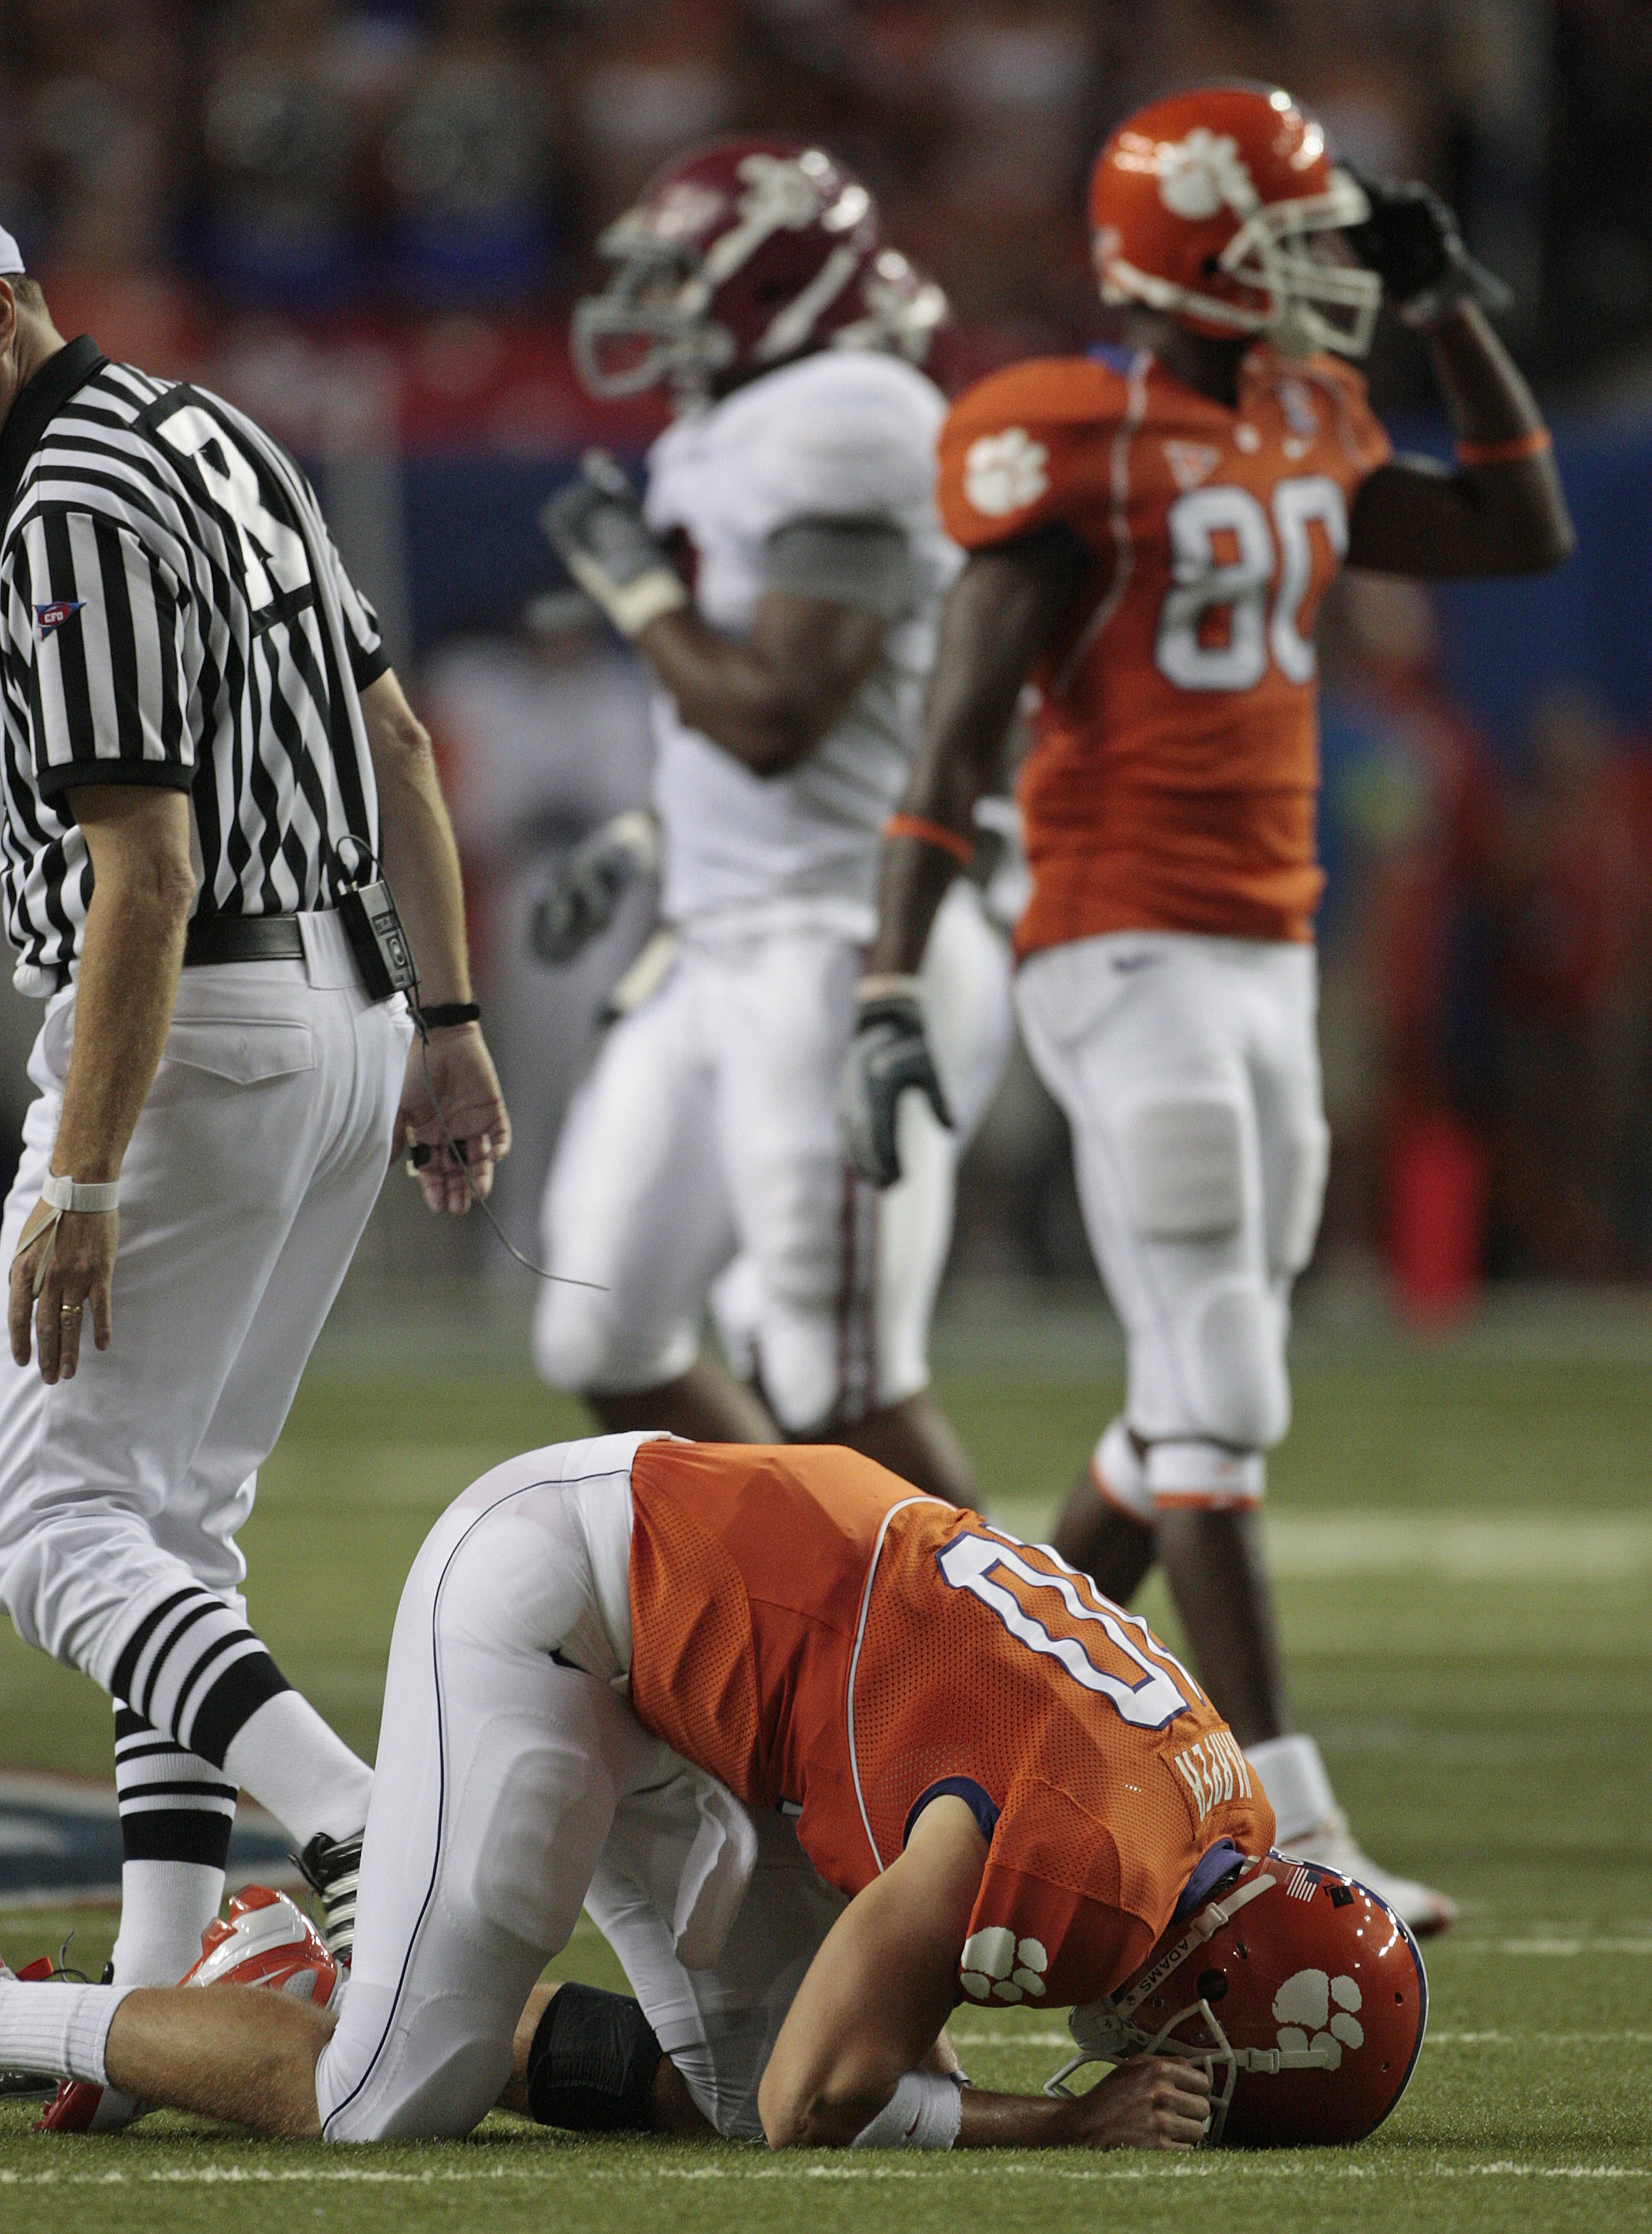 FILE - In this Aug. 30, 2008, file photo, Clemson quarterback Cullen Harper (10) gets up slowly after a hard hit by the Alabama defense during the second quarter of their football game at the Georgia Dome in Atlanta. Alabama defeated Clemson 34-10. Alabam